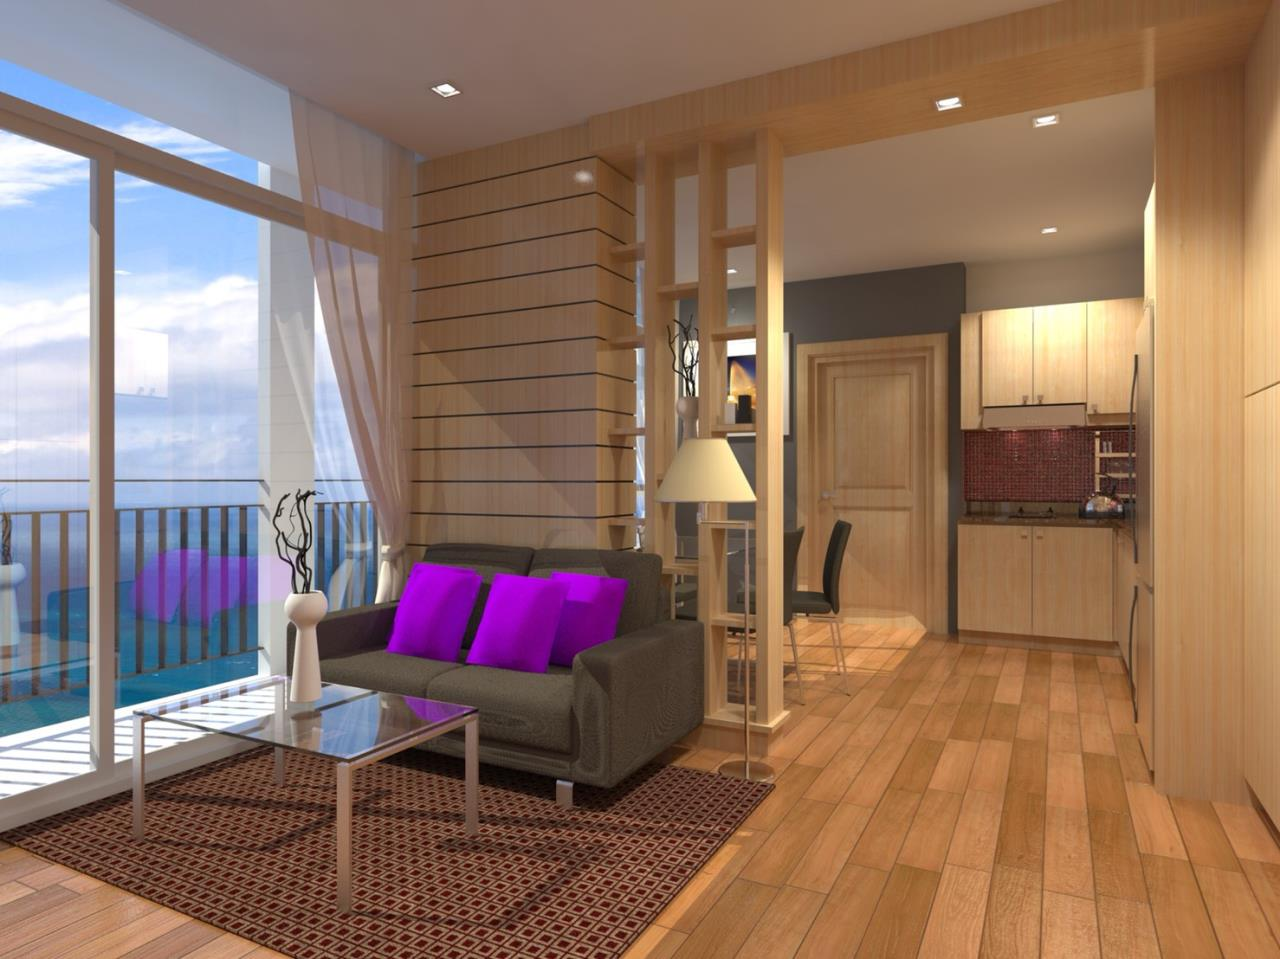 Signature Realty ( Thailand ) Co Ltd Agency's Furnished 1bedroom 46 sq.m condo with jacuzzi floor 2-10 at The Grand Jomtein Beach Pattaya 25